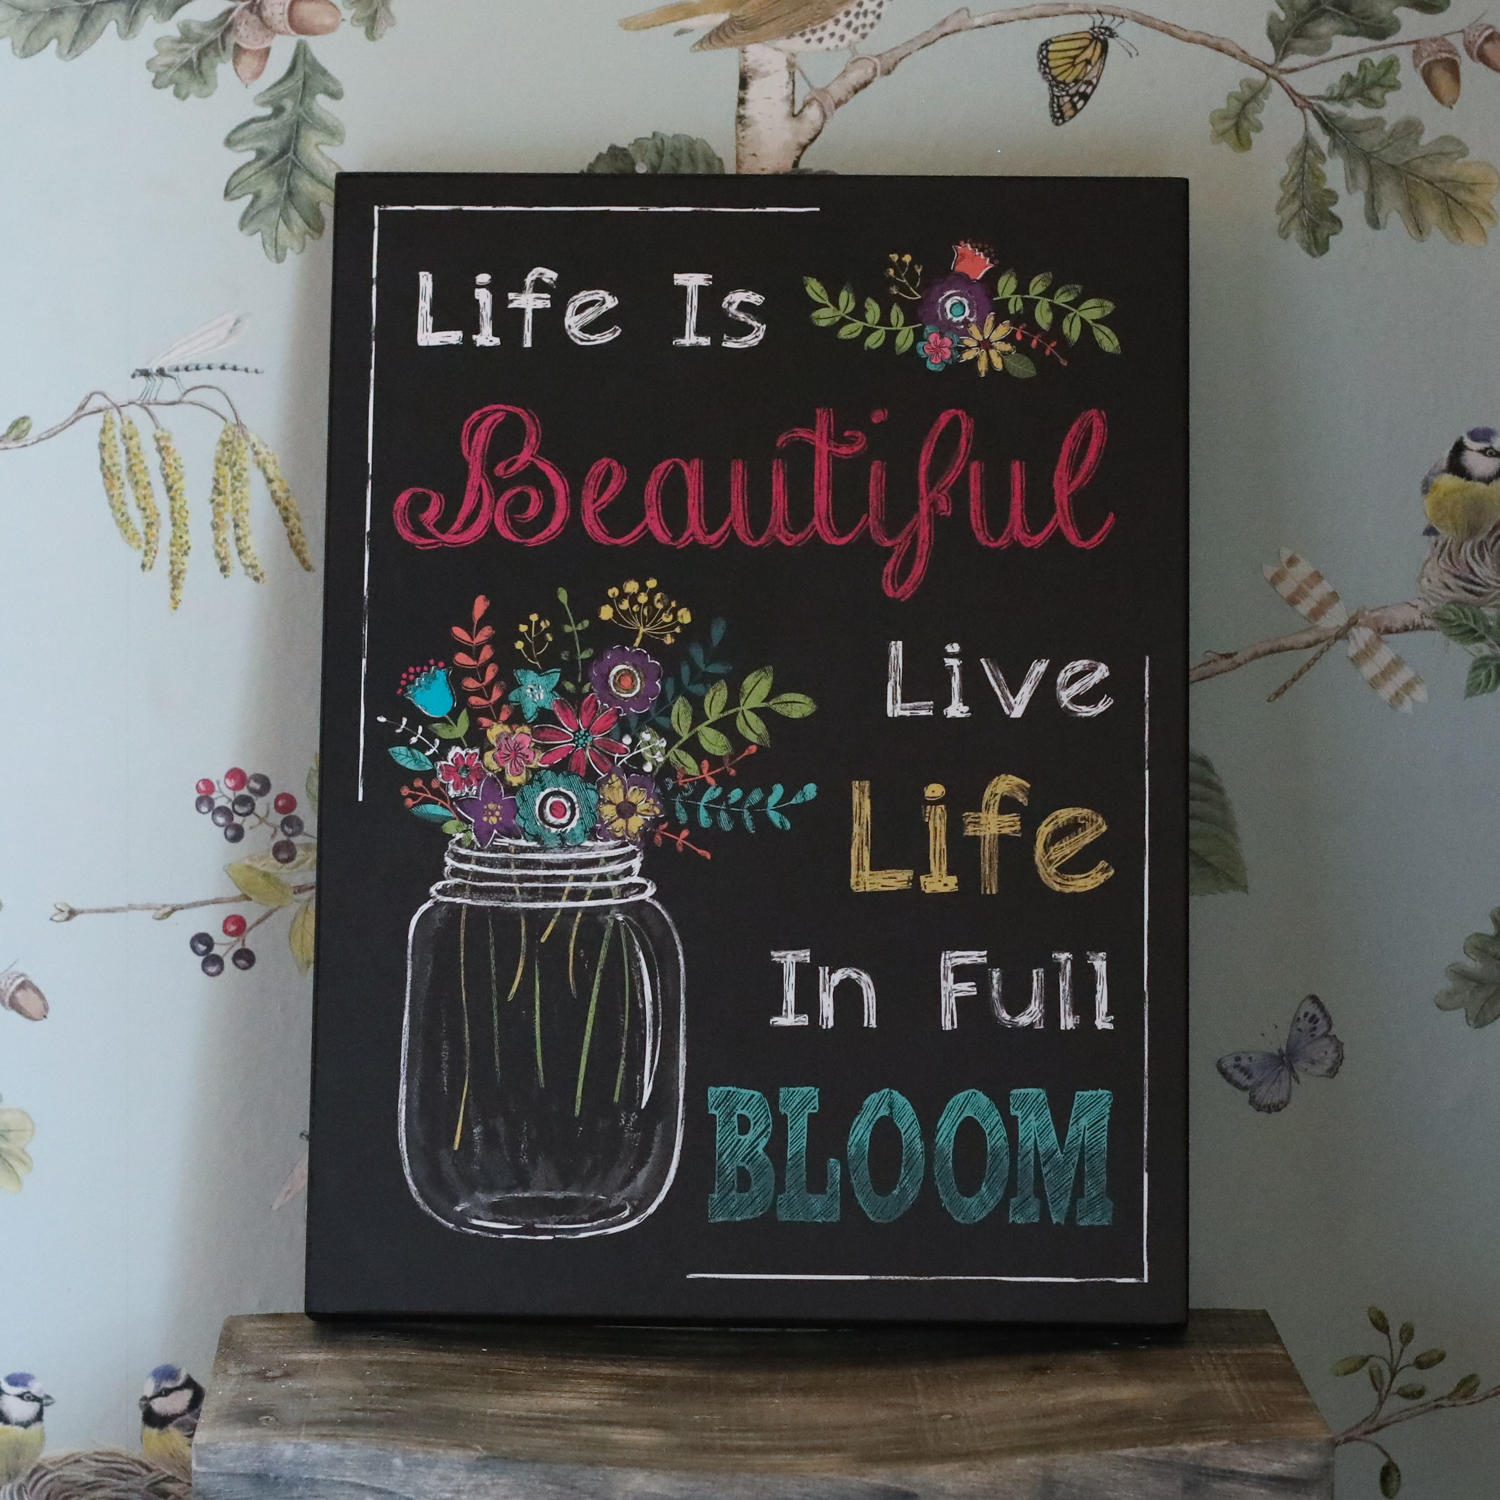 Life is Beautiful, Live Life In Full Bloom, Wall Plaque.